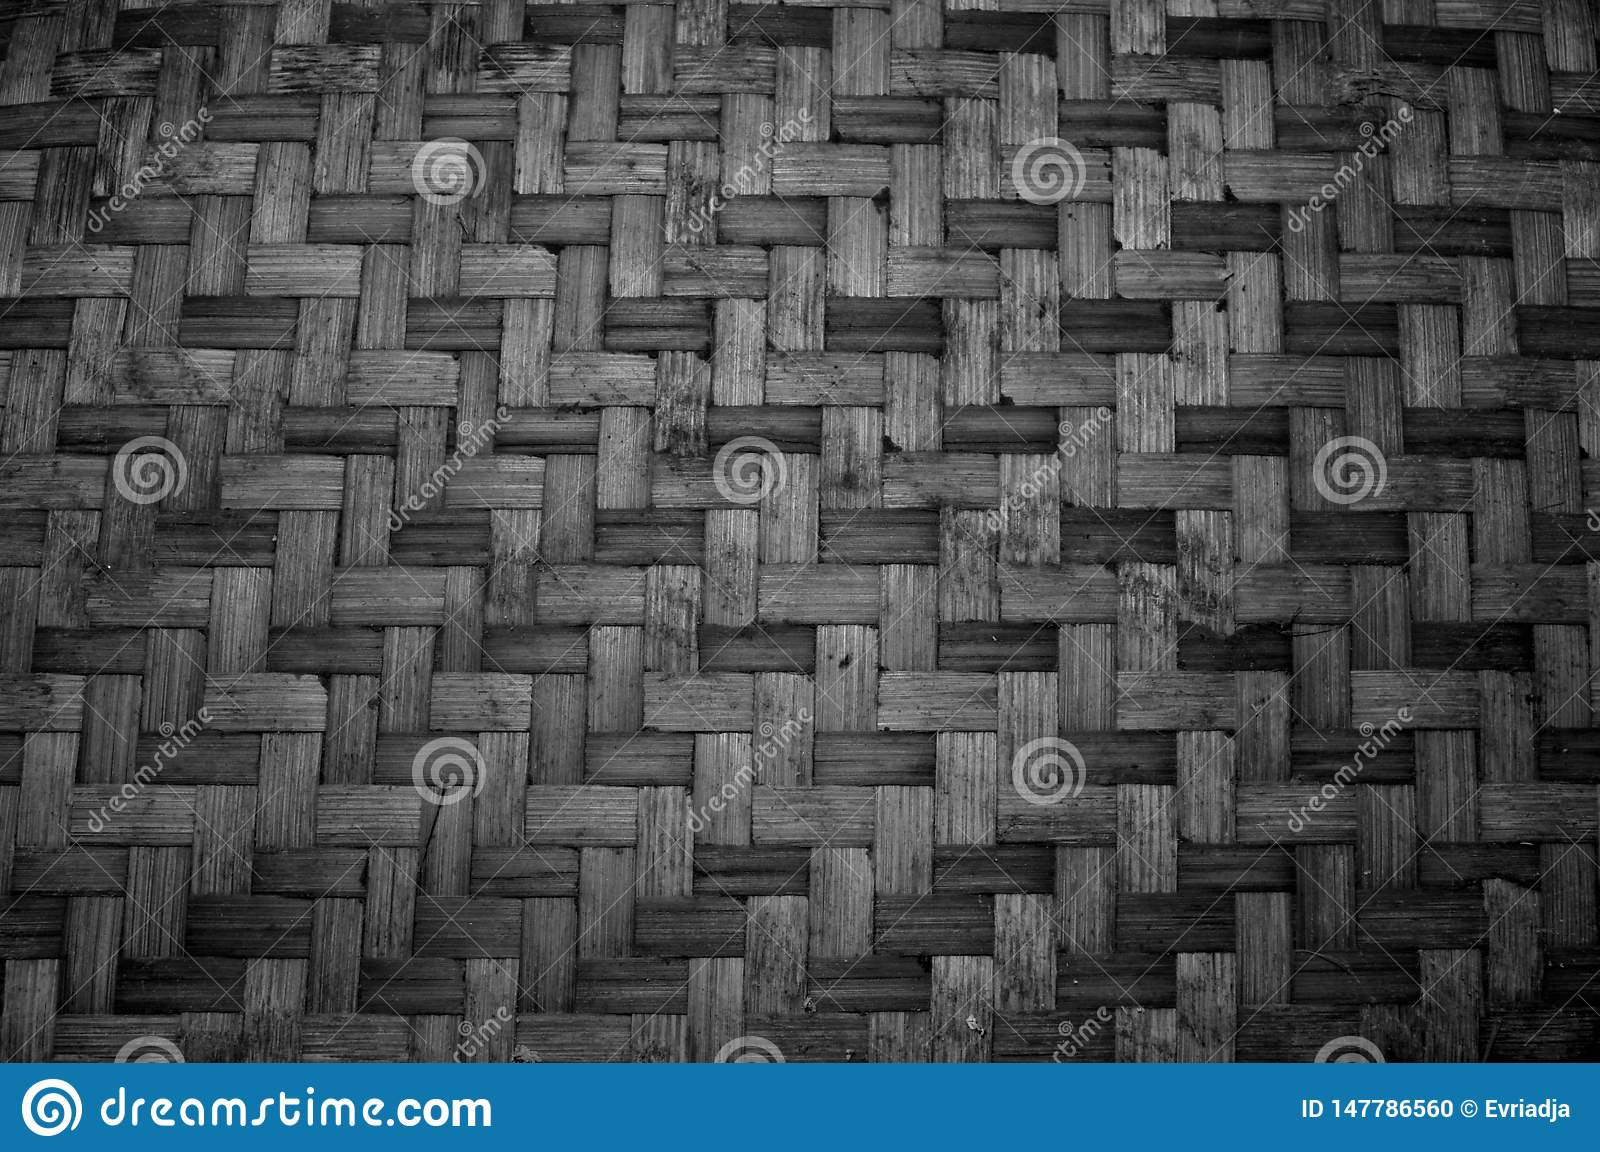 Woven bamboo texture. Pattern and texture background